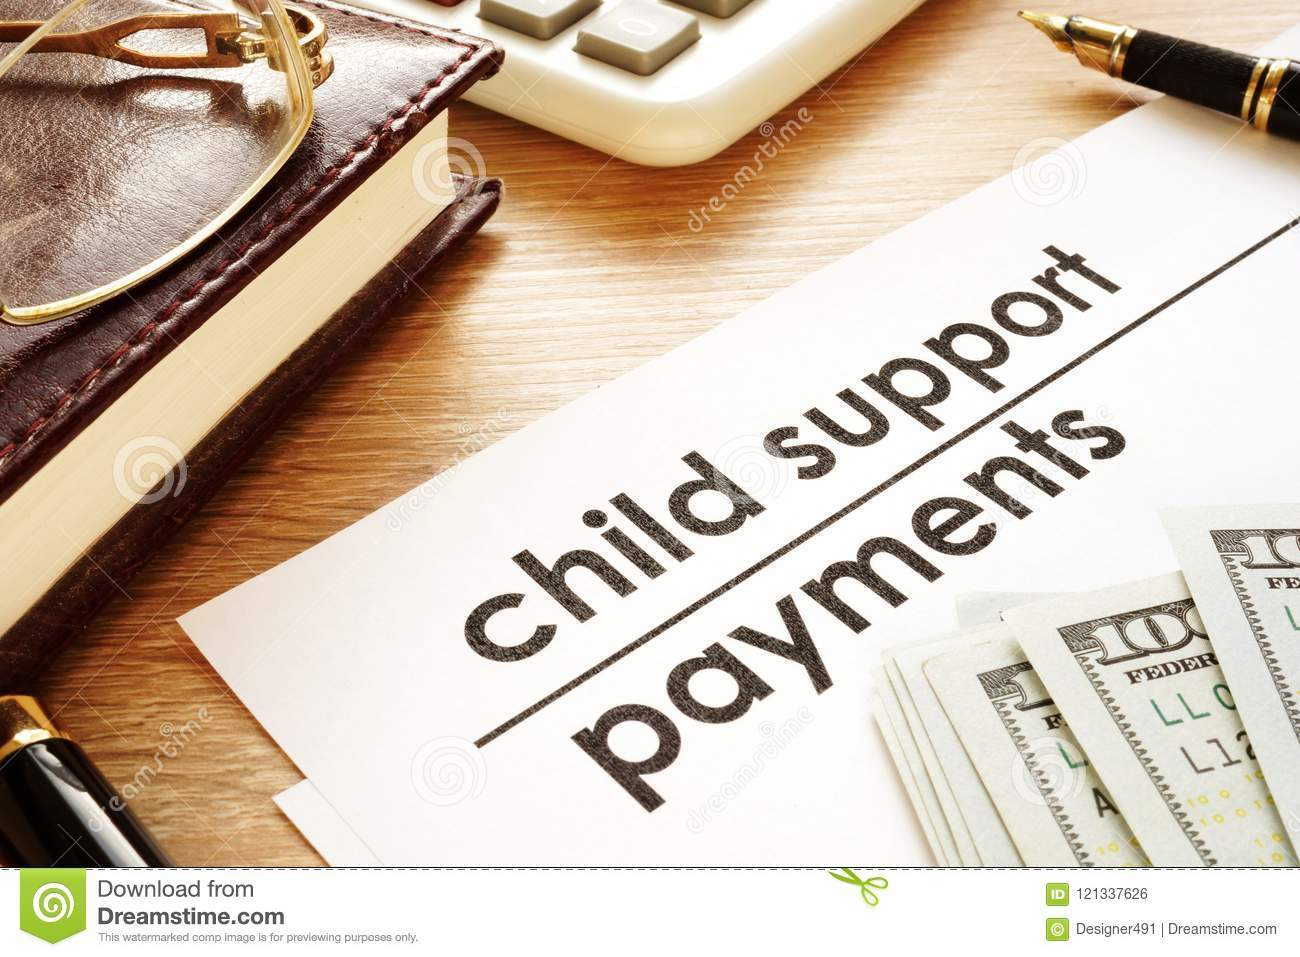 Tampa Child Support Attorney Free Consultation Child Support Lawyer Fl